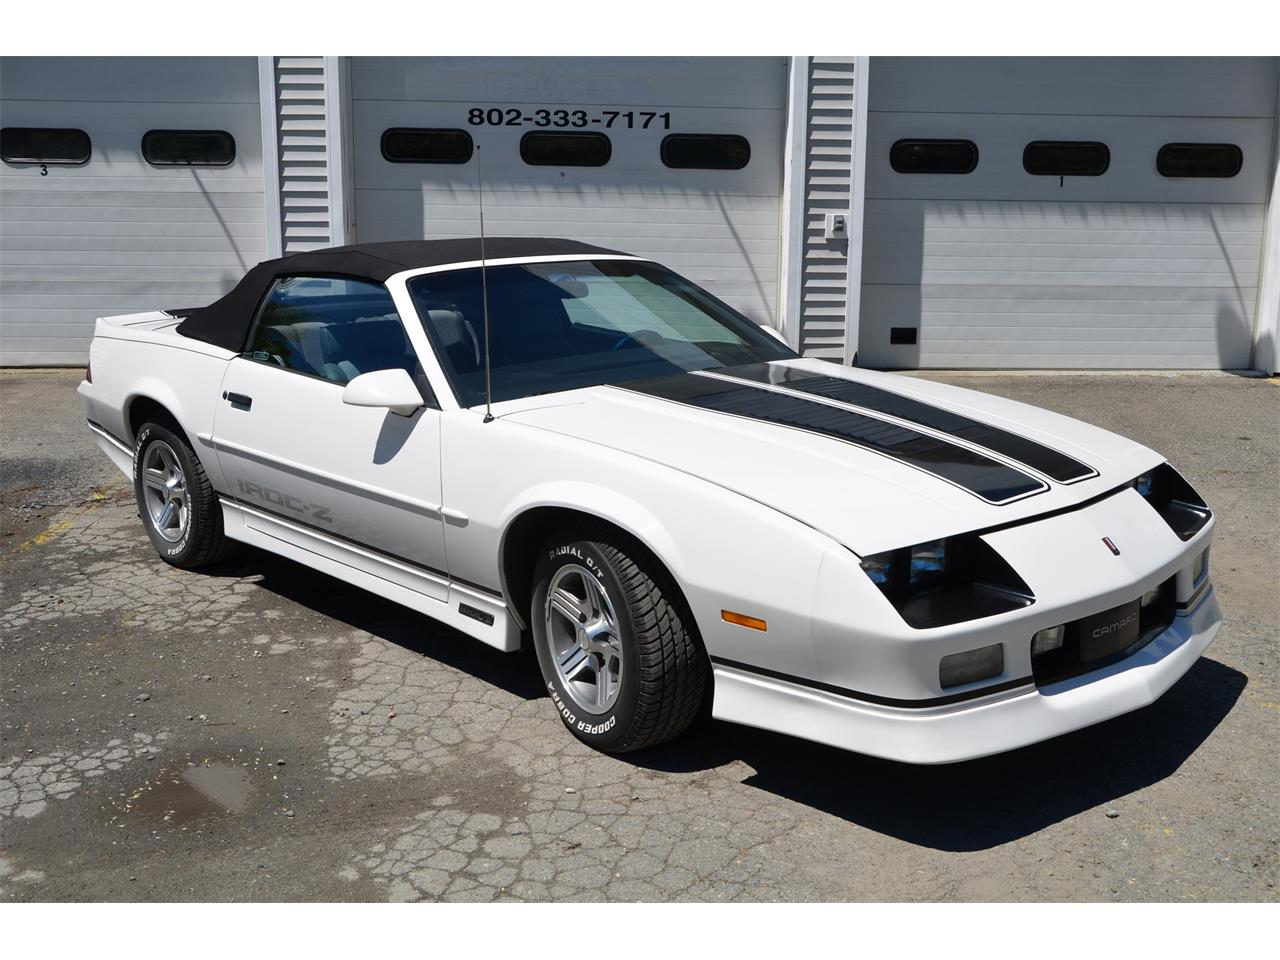 Large Picture of 1989 Camaro IROC-Z located in North Thetford Vermont - $14,000.00 - LBGQ